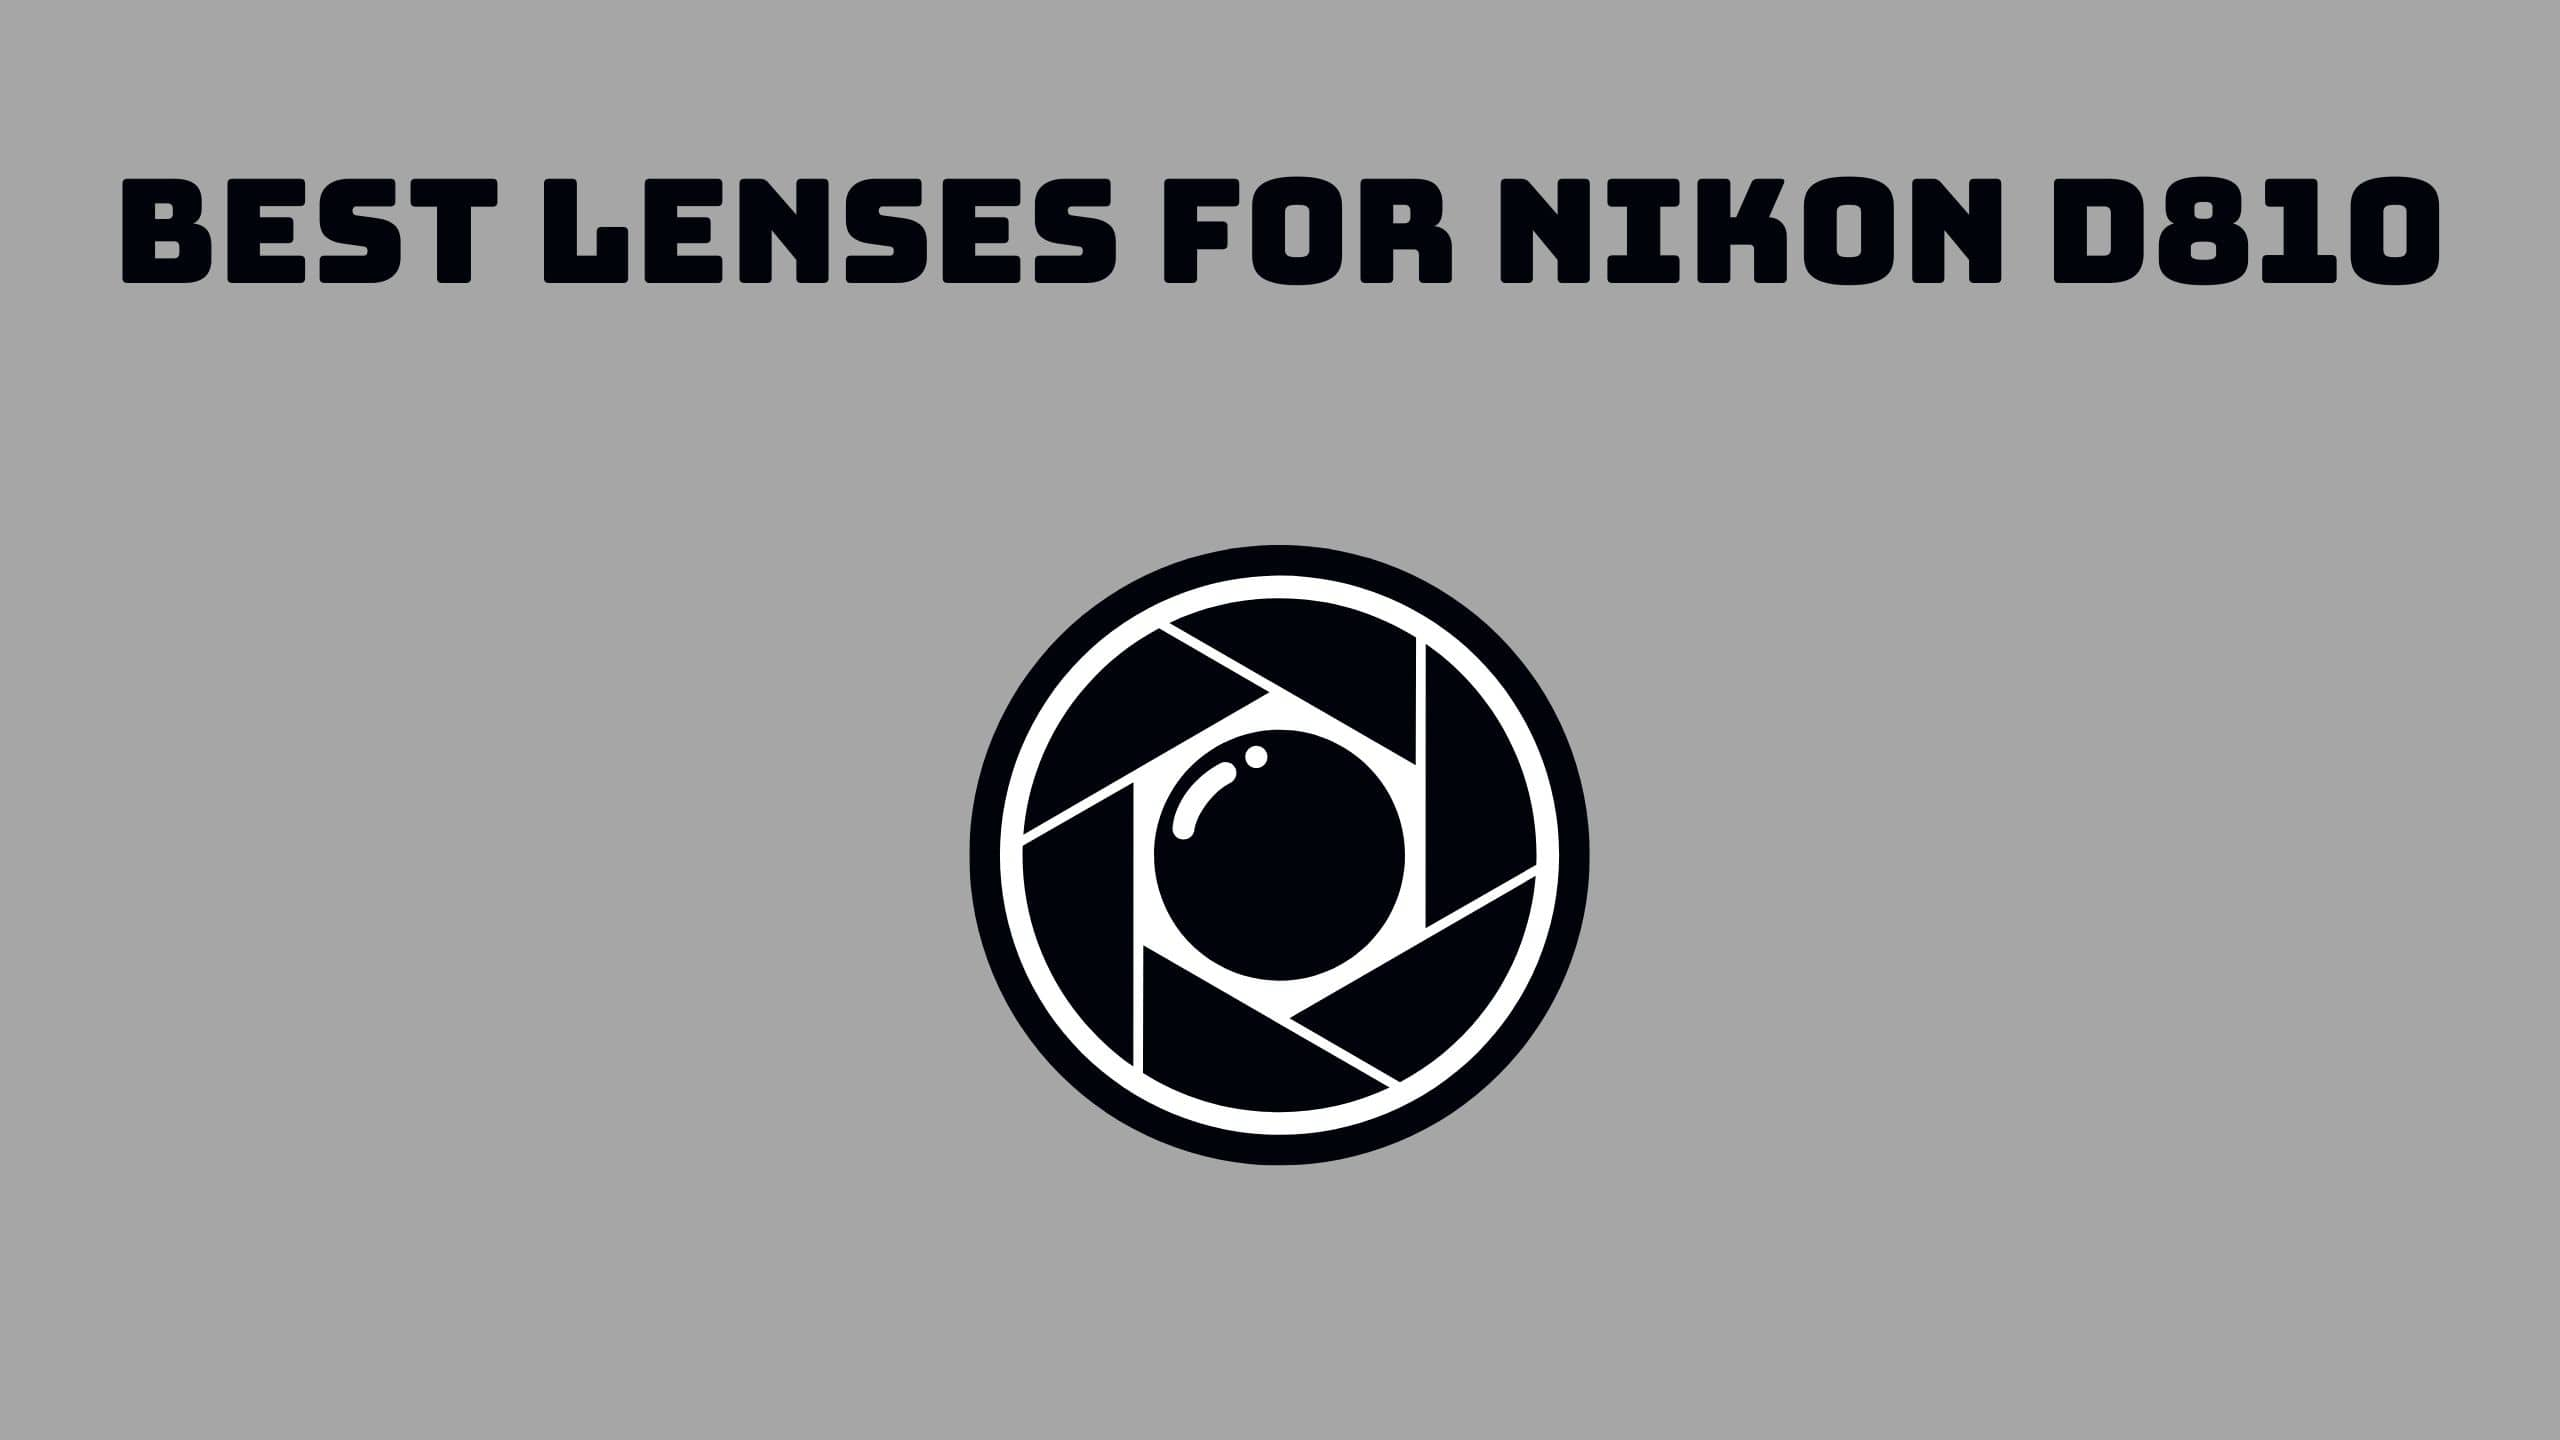 Best Lenses for Nikon D810